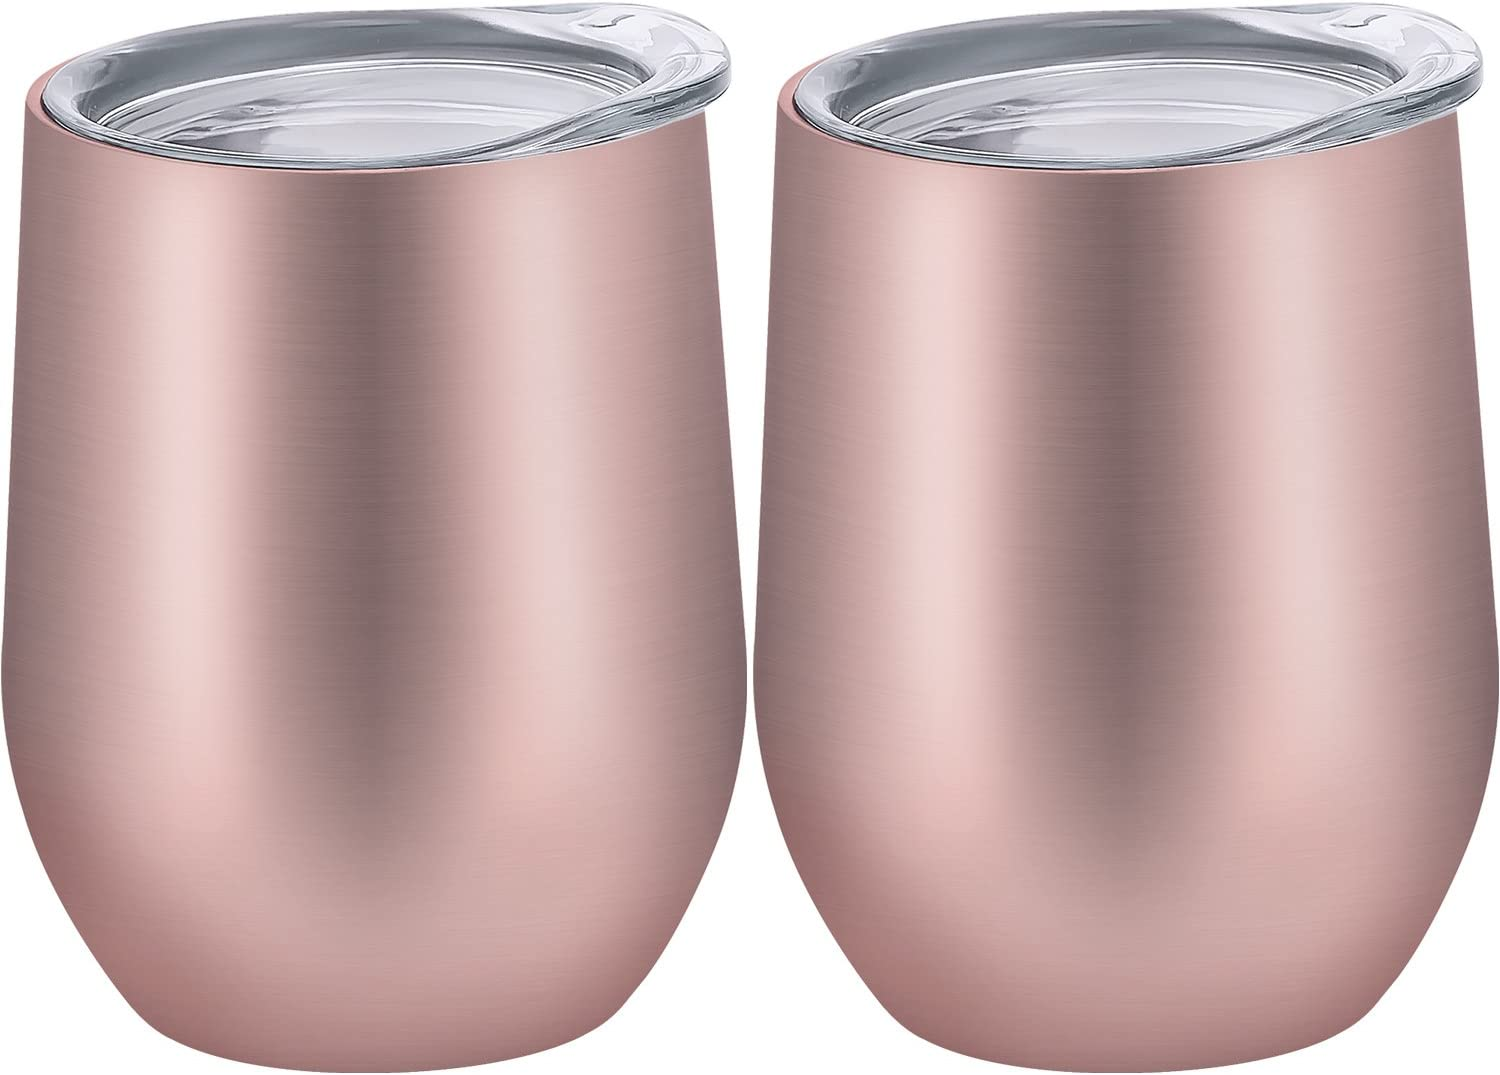 Skylety 12 oz Insulated Wine Tumbler with Lid, Stainless Steel Stemless Wine Glass Double Wall Vacuum Insulated Travel Tumbler Cup for Coffee, Drinks, Champagne, Beverage, 2 Pieces (Rose Gold)